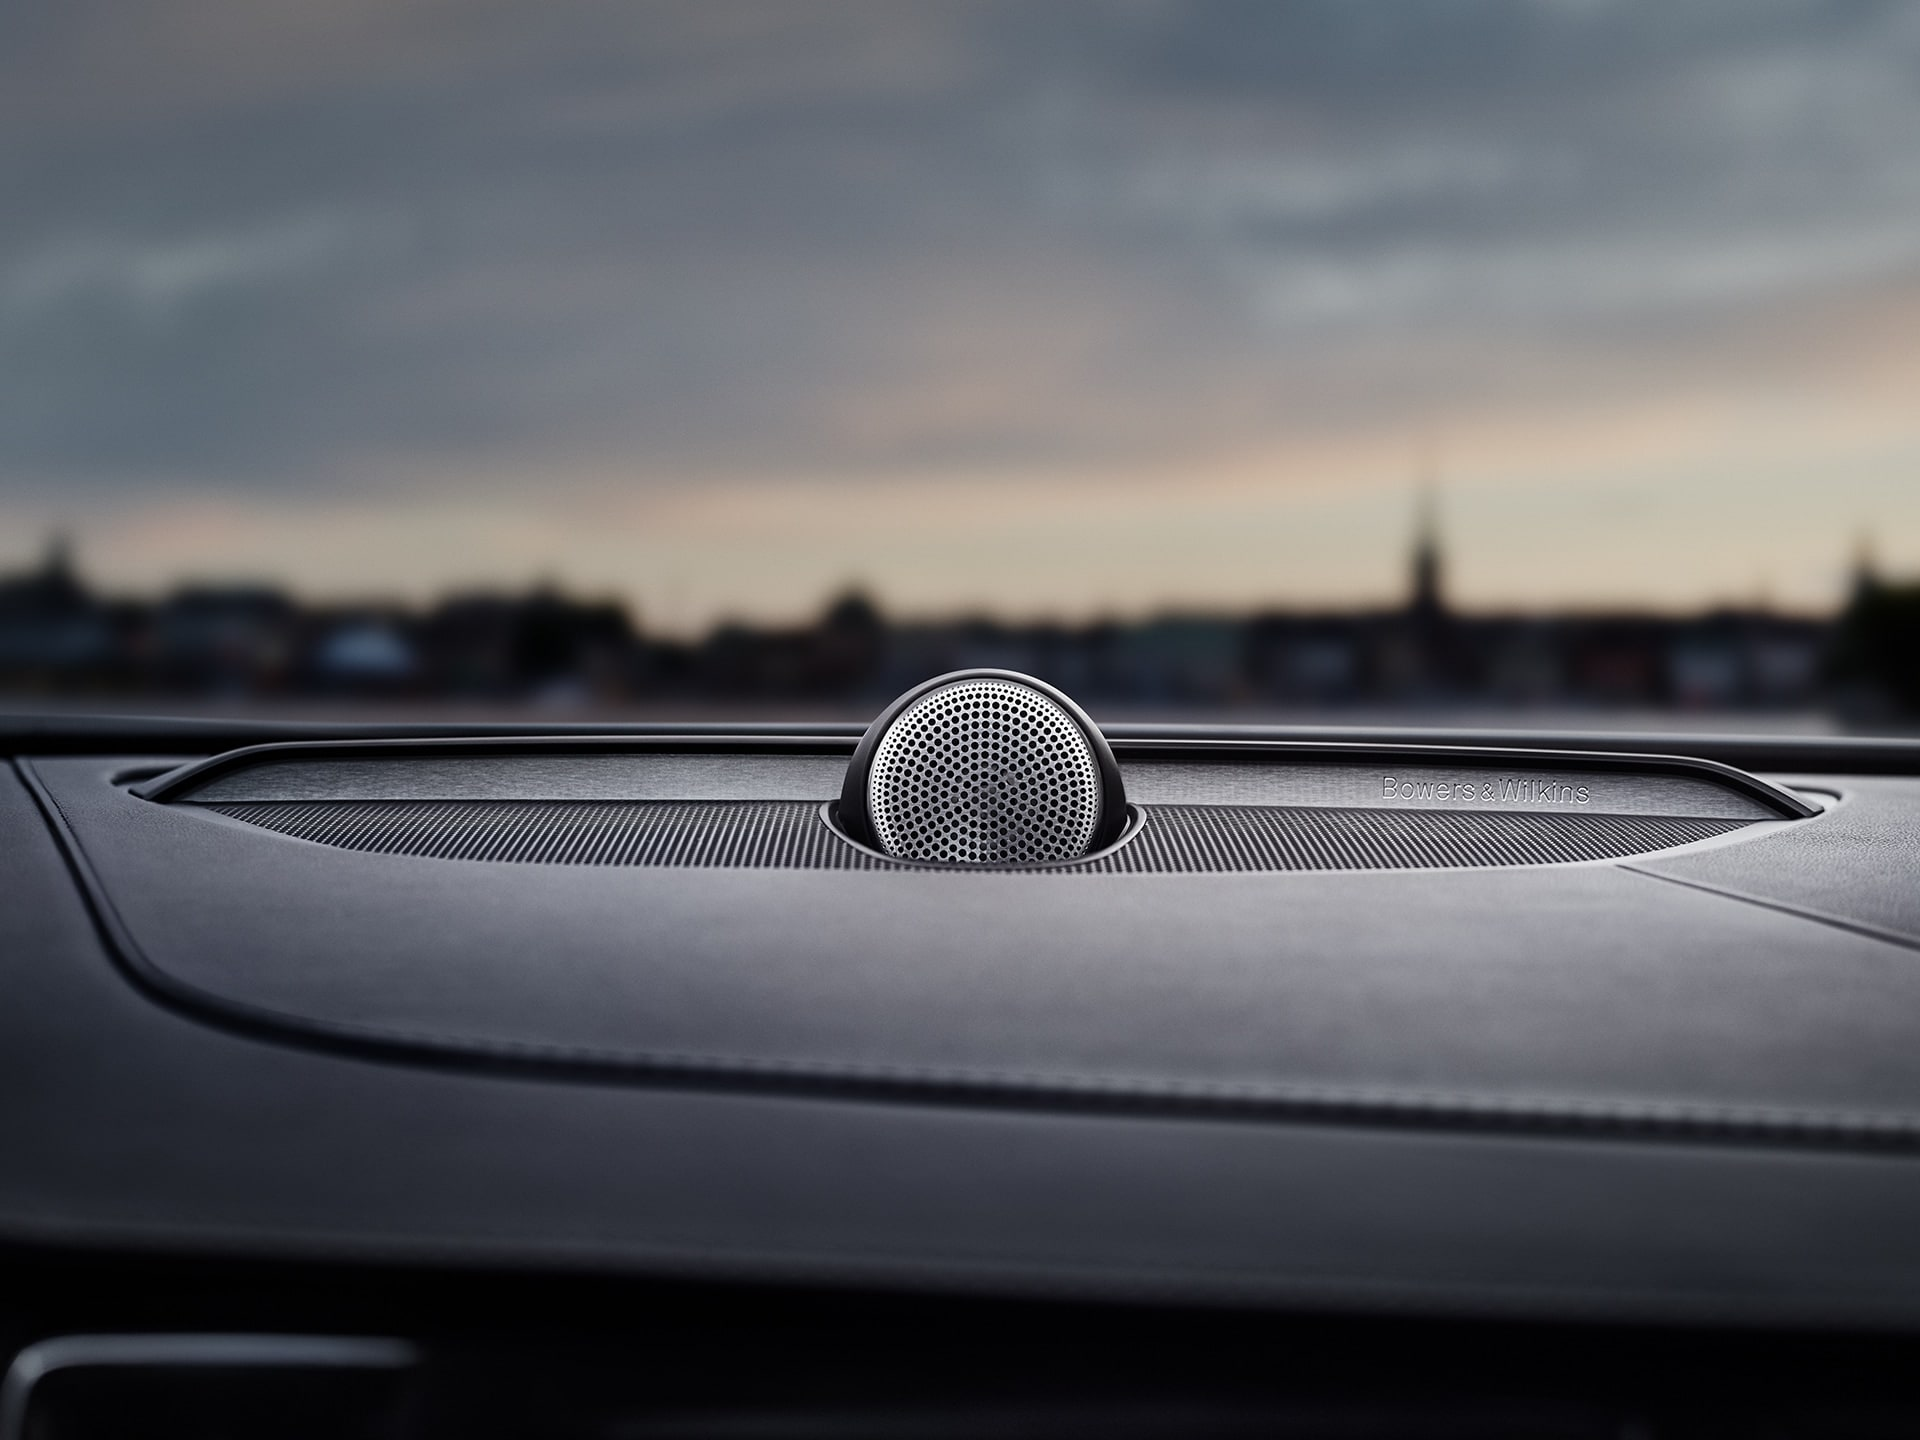 Altavoces Bowers & Wilkins dentro de un Volvo XC90 Recharge